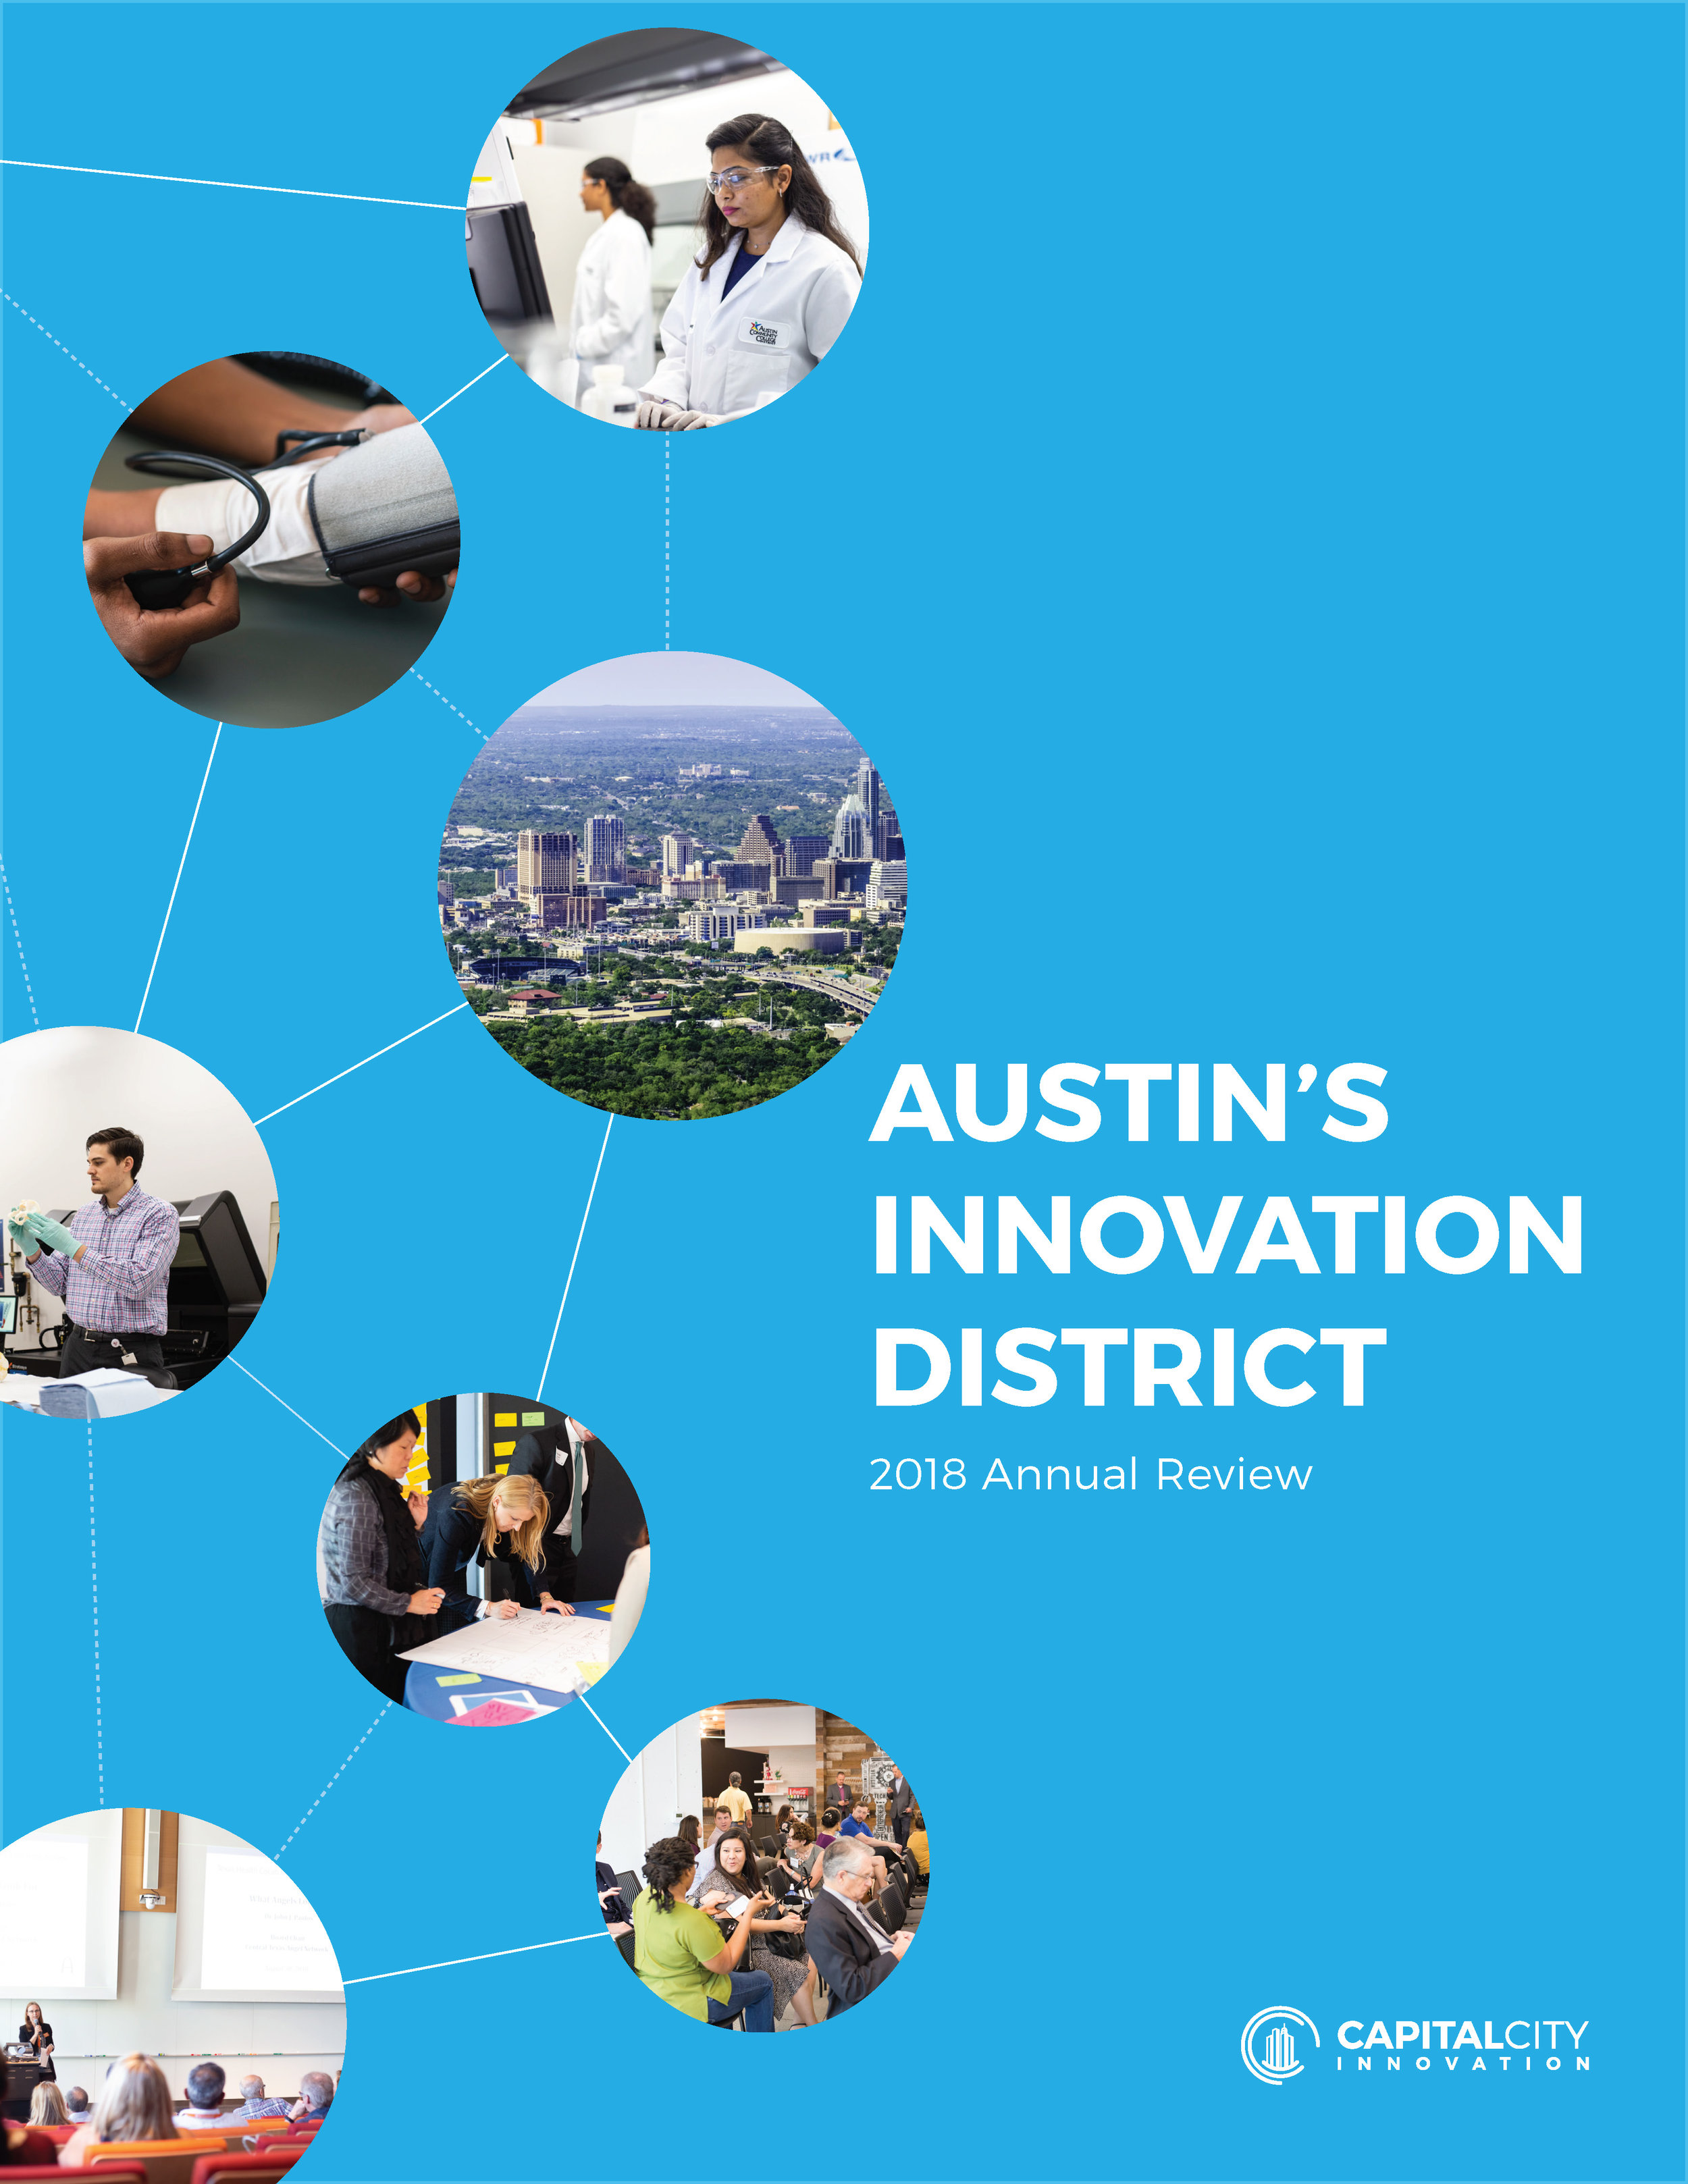 Austins Innovation District 2018 Annual Review